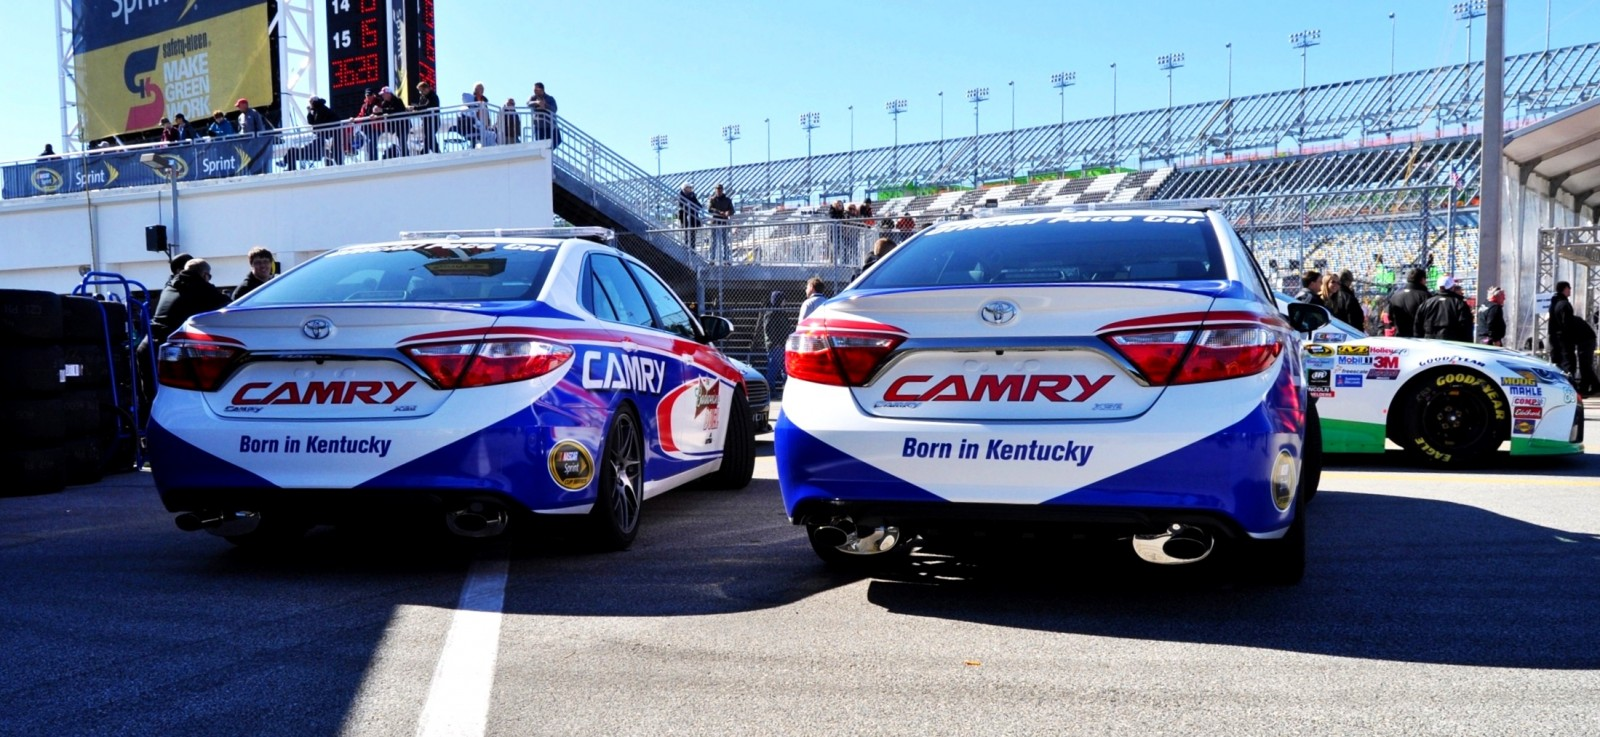 2015 Toyota Camry - DAYTONA 500 Official Pace Car 15